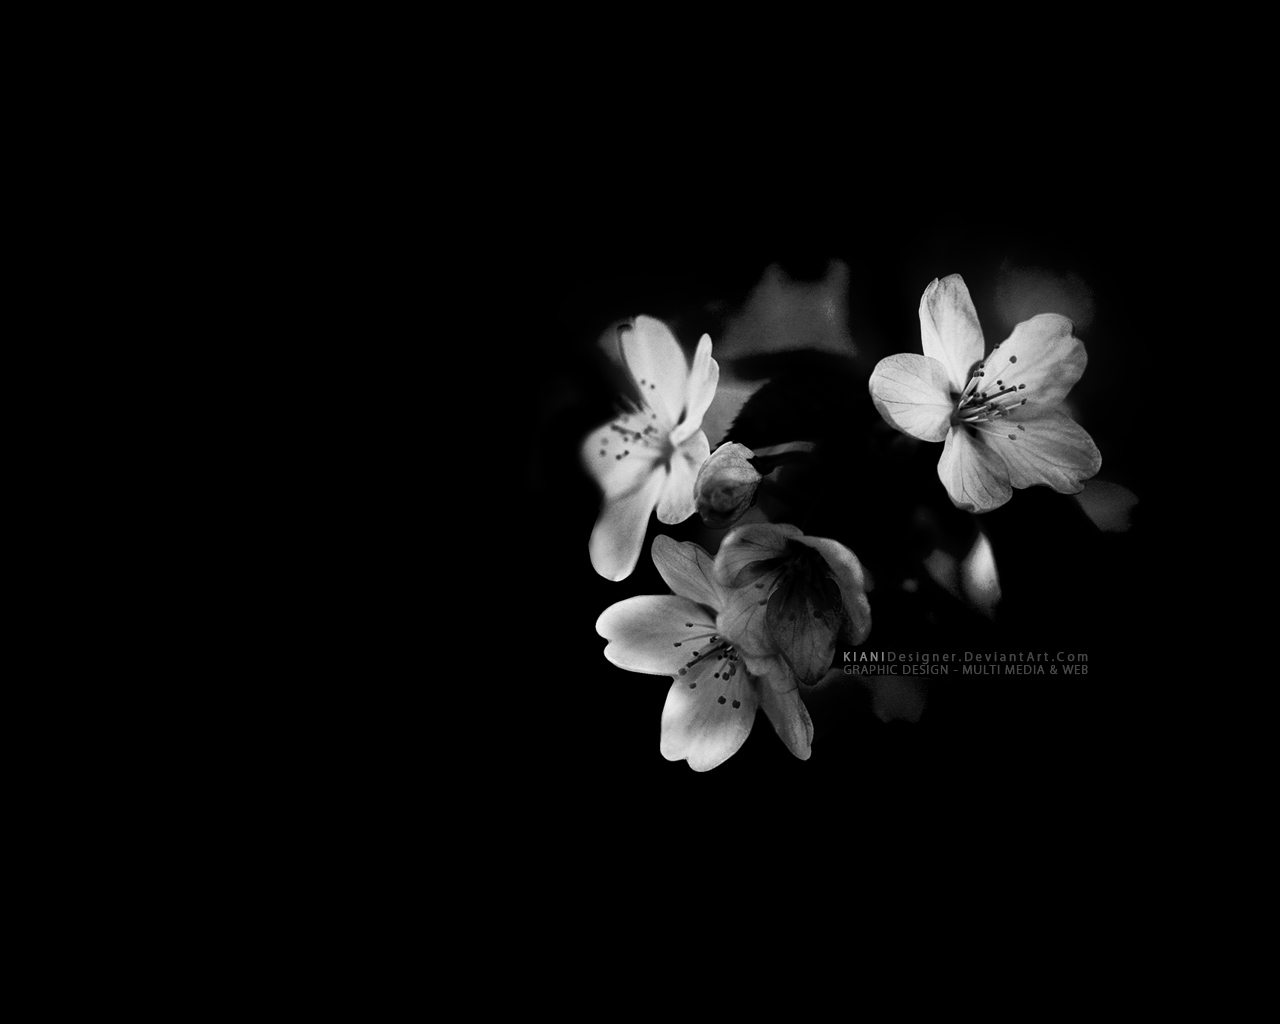 Black And White Flowers Wallpaper 16 Wide Wallpaper